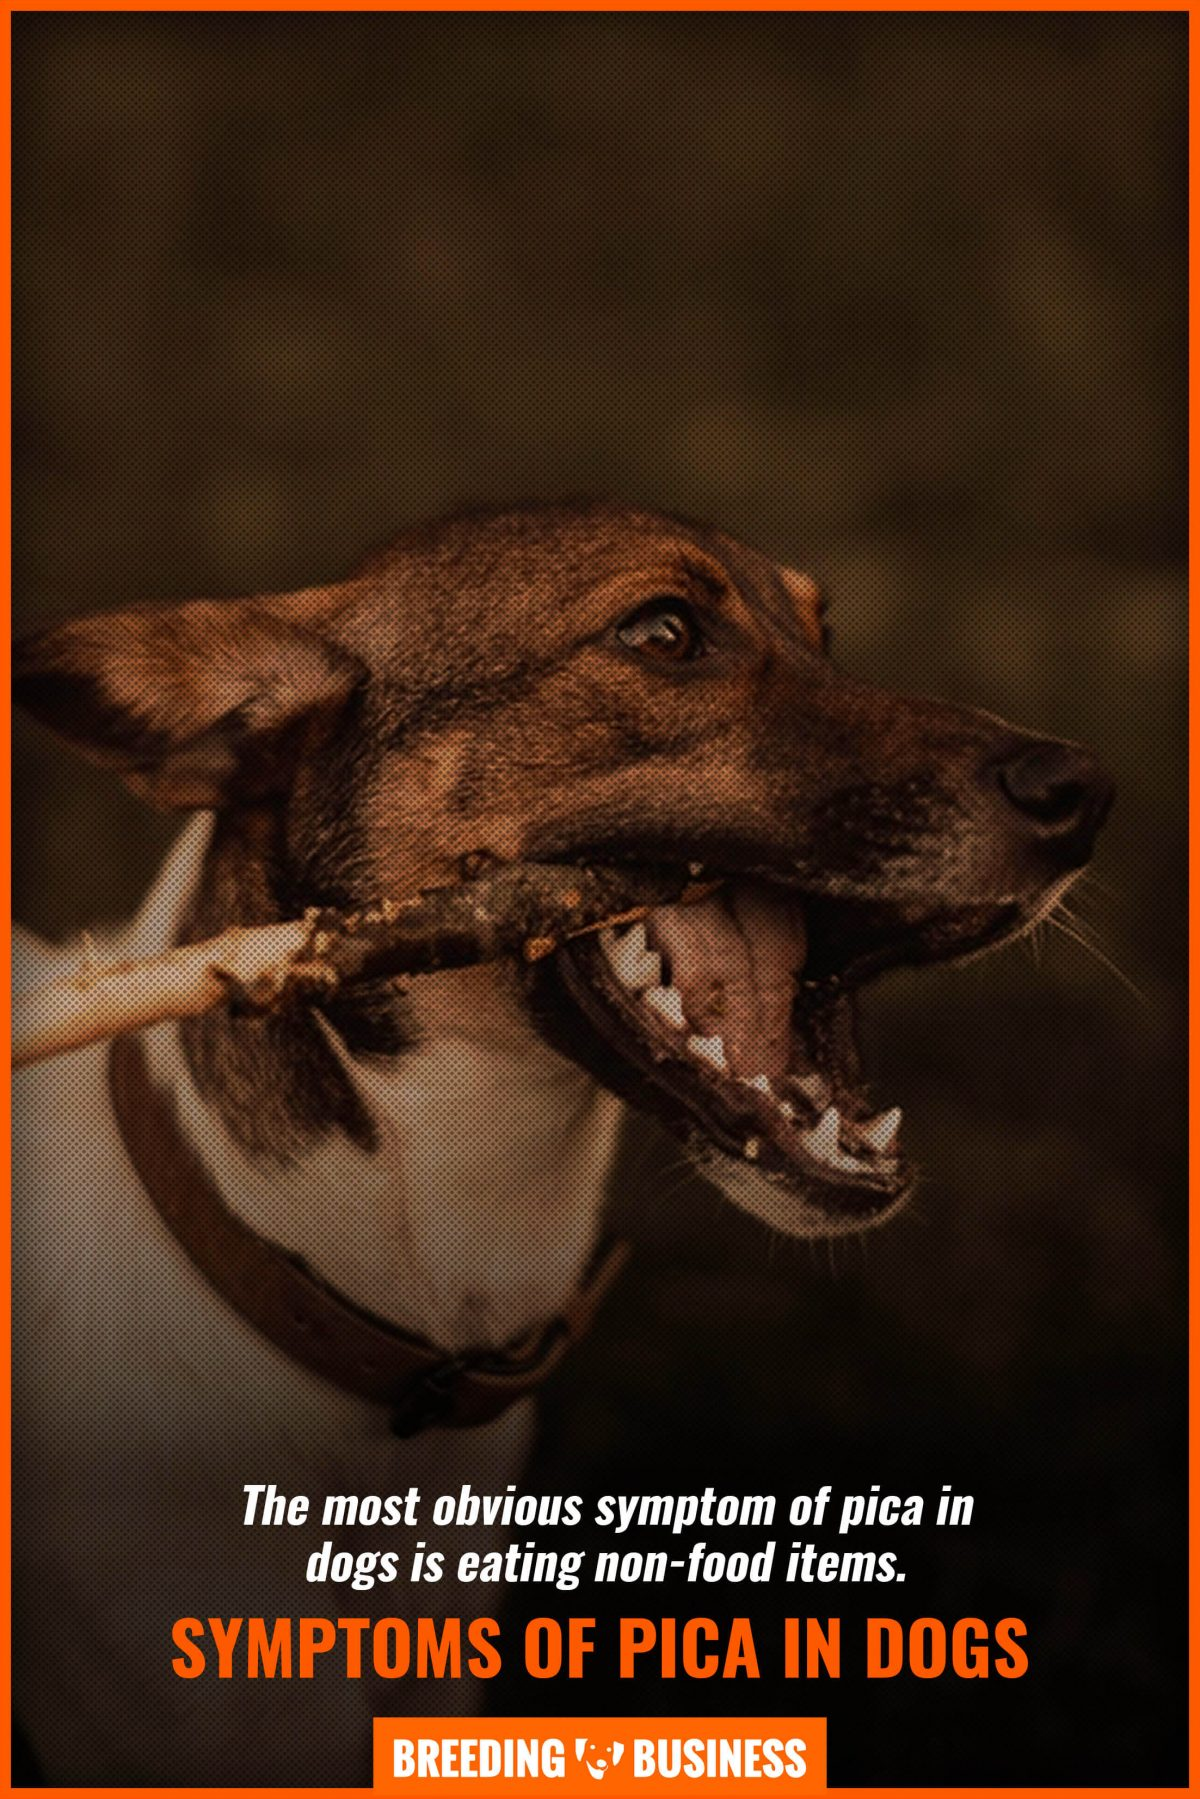 symptoms of pica in dogs